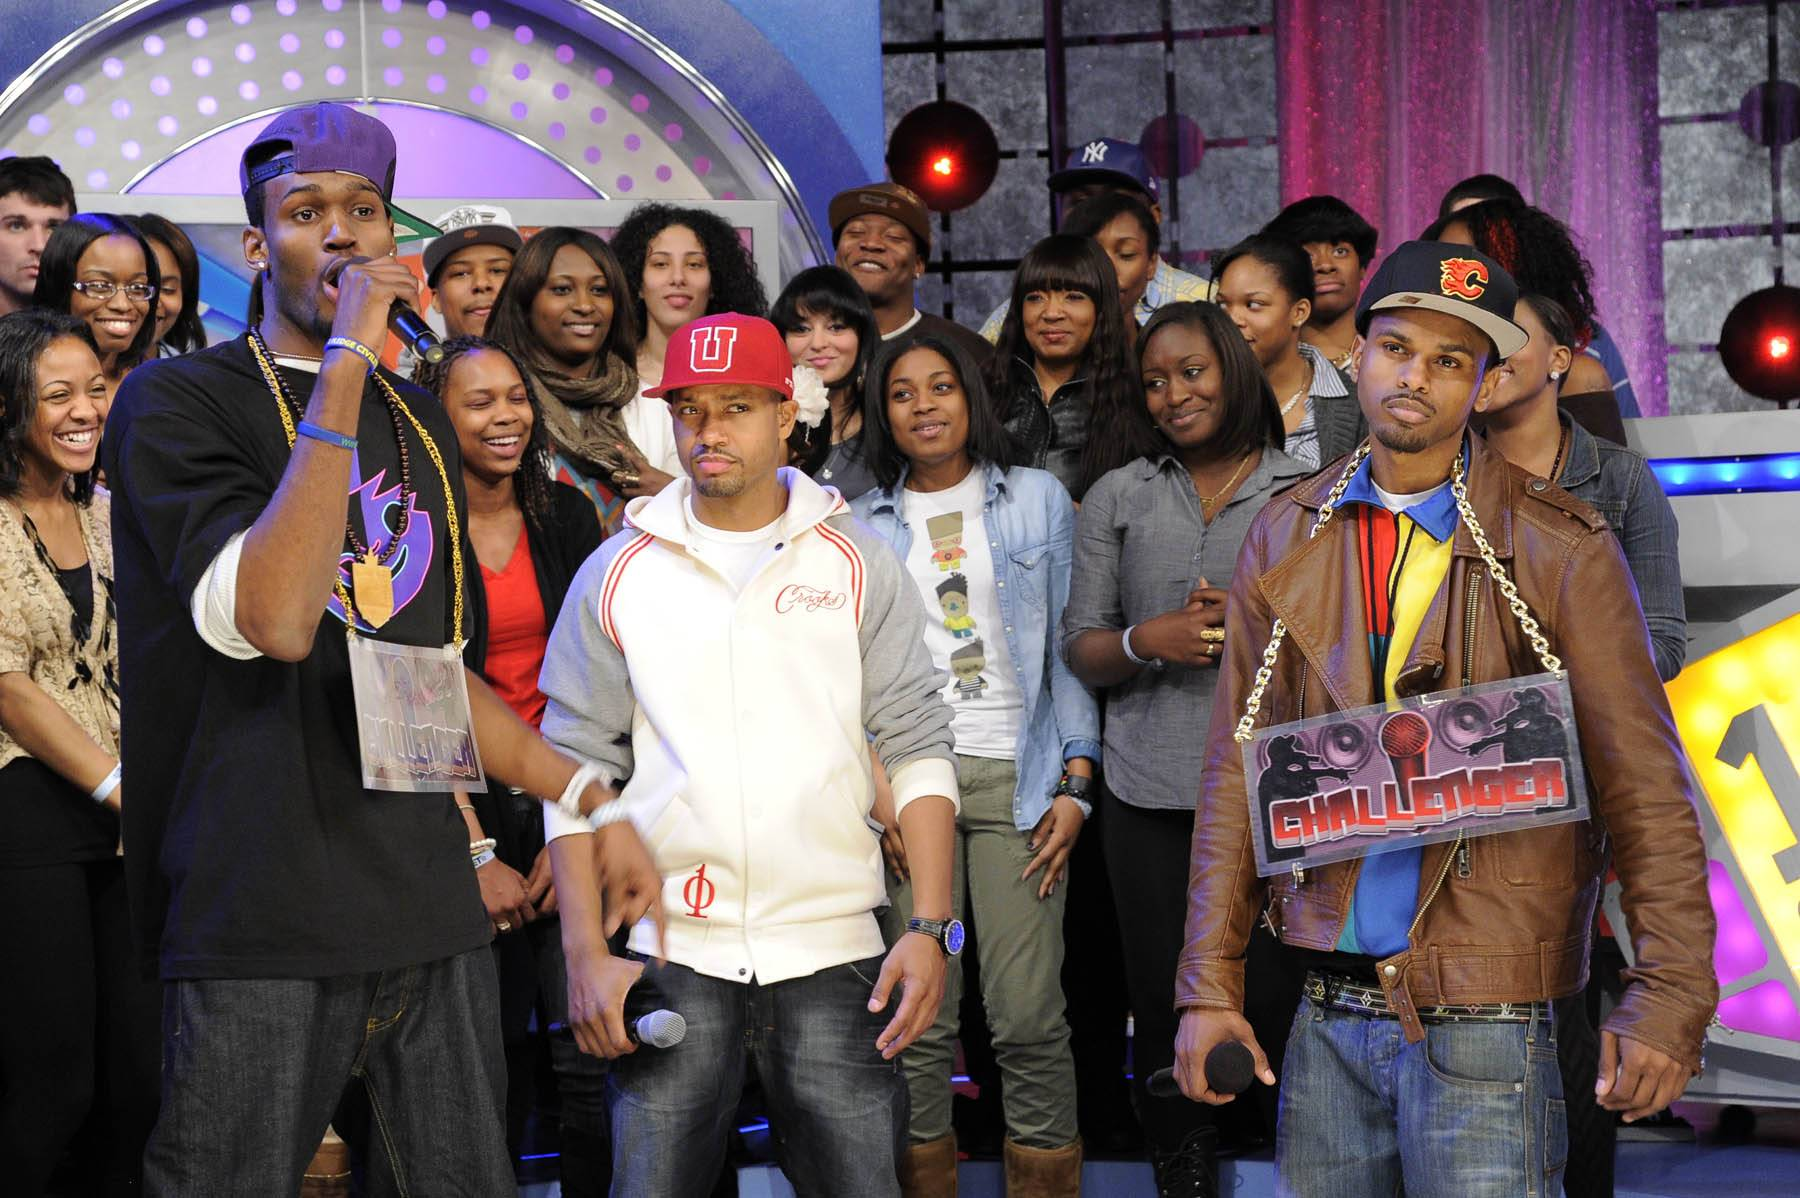 You Don't Know Me - In round two, Freestyle Friday challenger Rio the Raptor spits at 106 & Park, January 27, 2012. (Photo: John Ricard / BET)